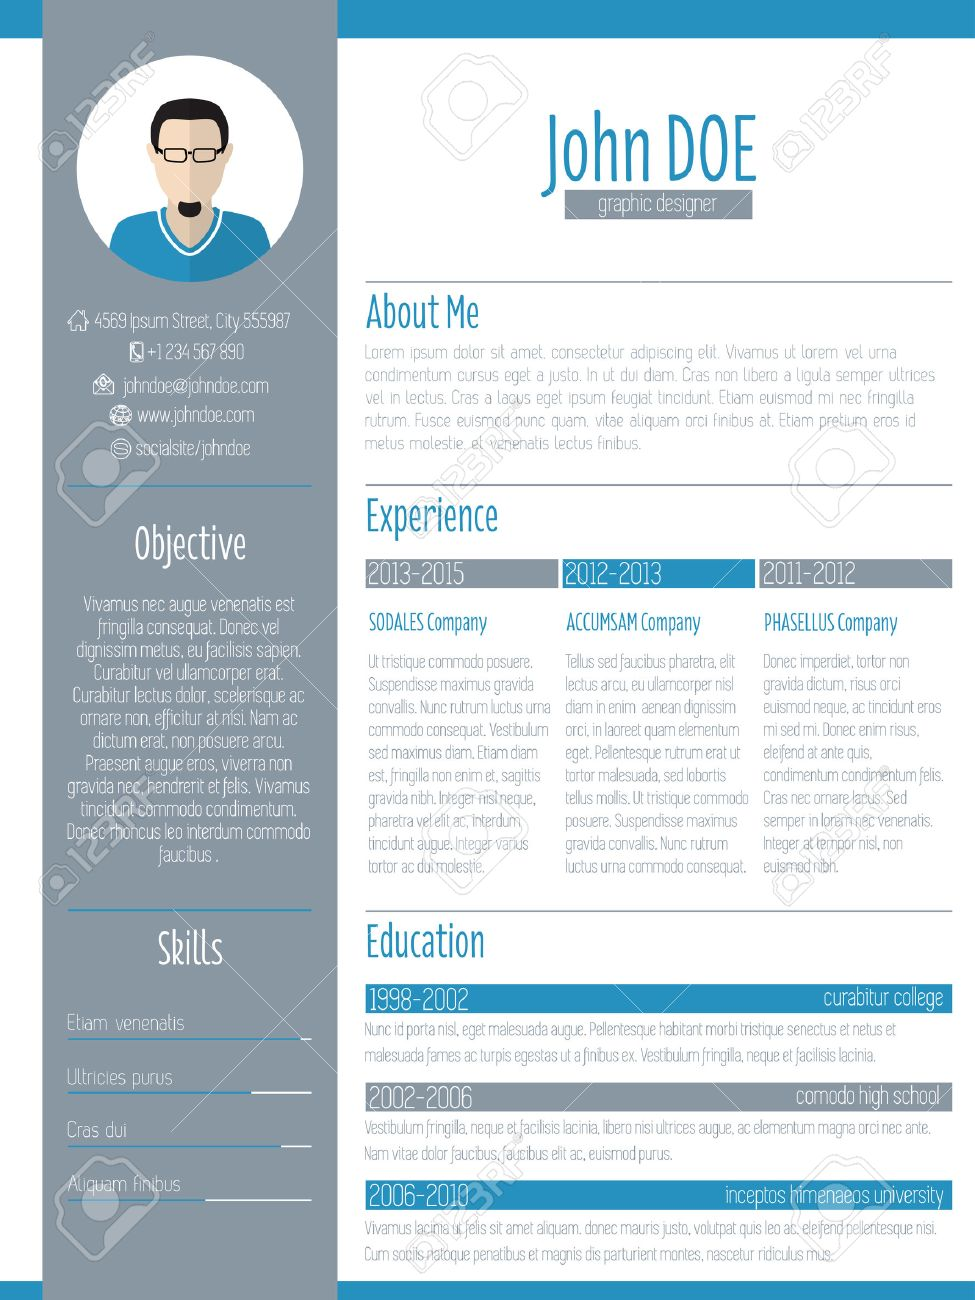 Modern Resume Curriculum Vitae Cv Design With Photo Royalty Free